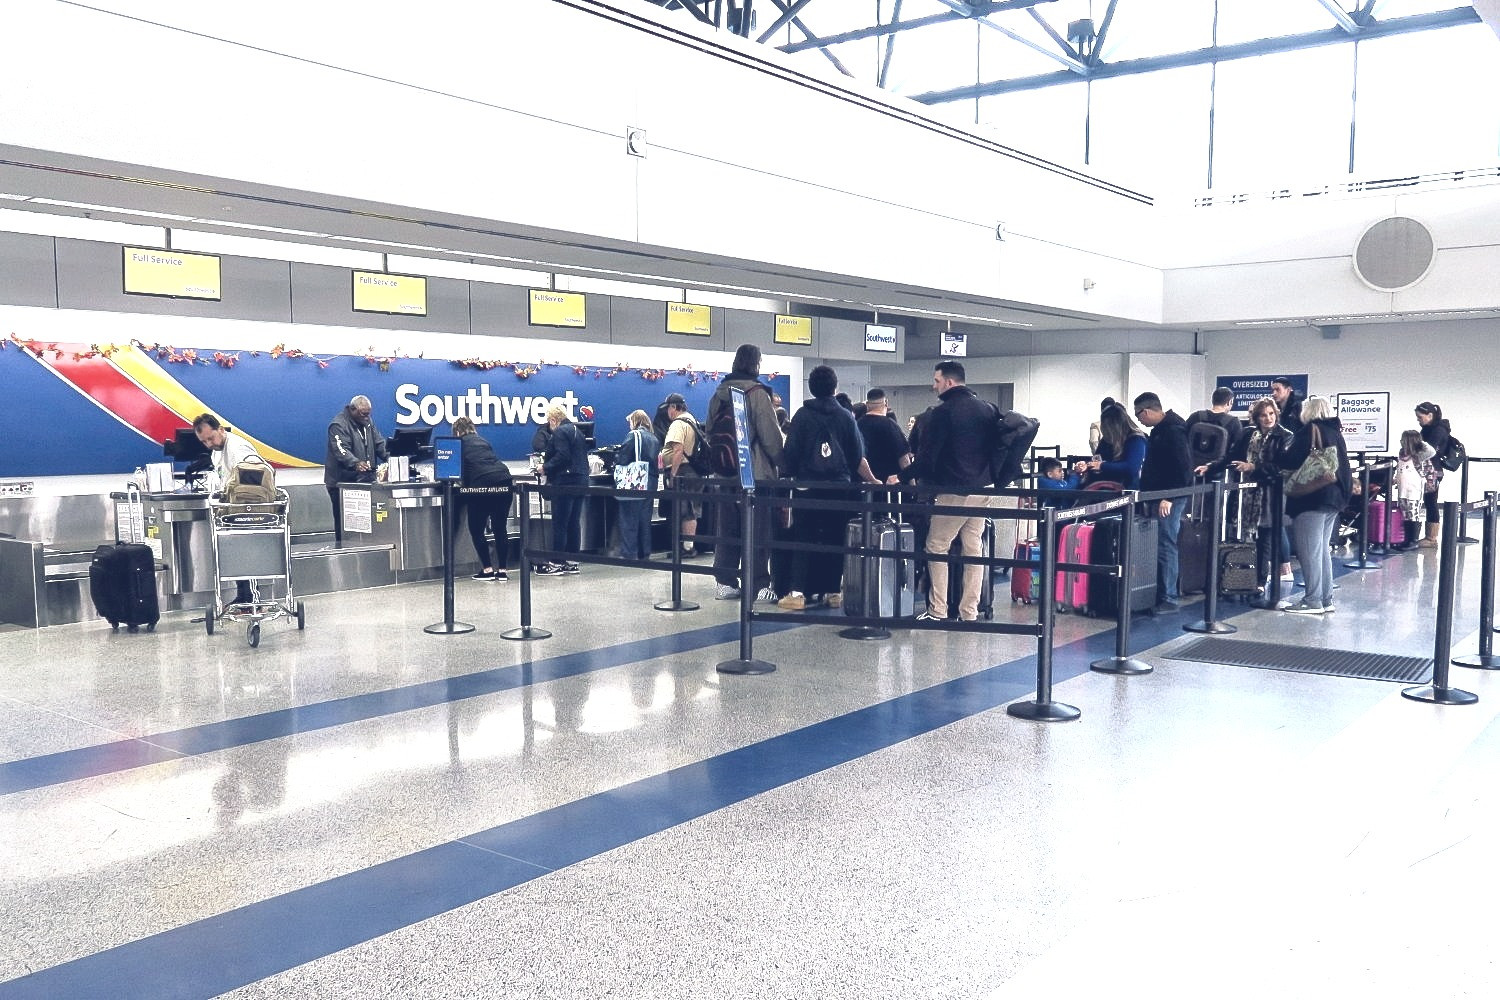 southwest-nov18-check-in-staffed_edited.